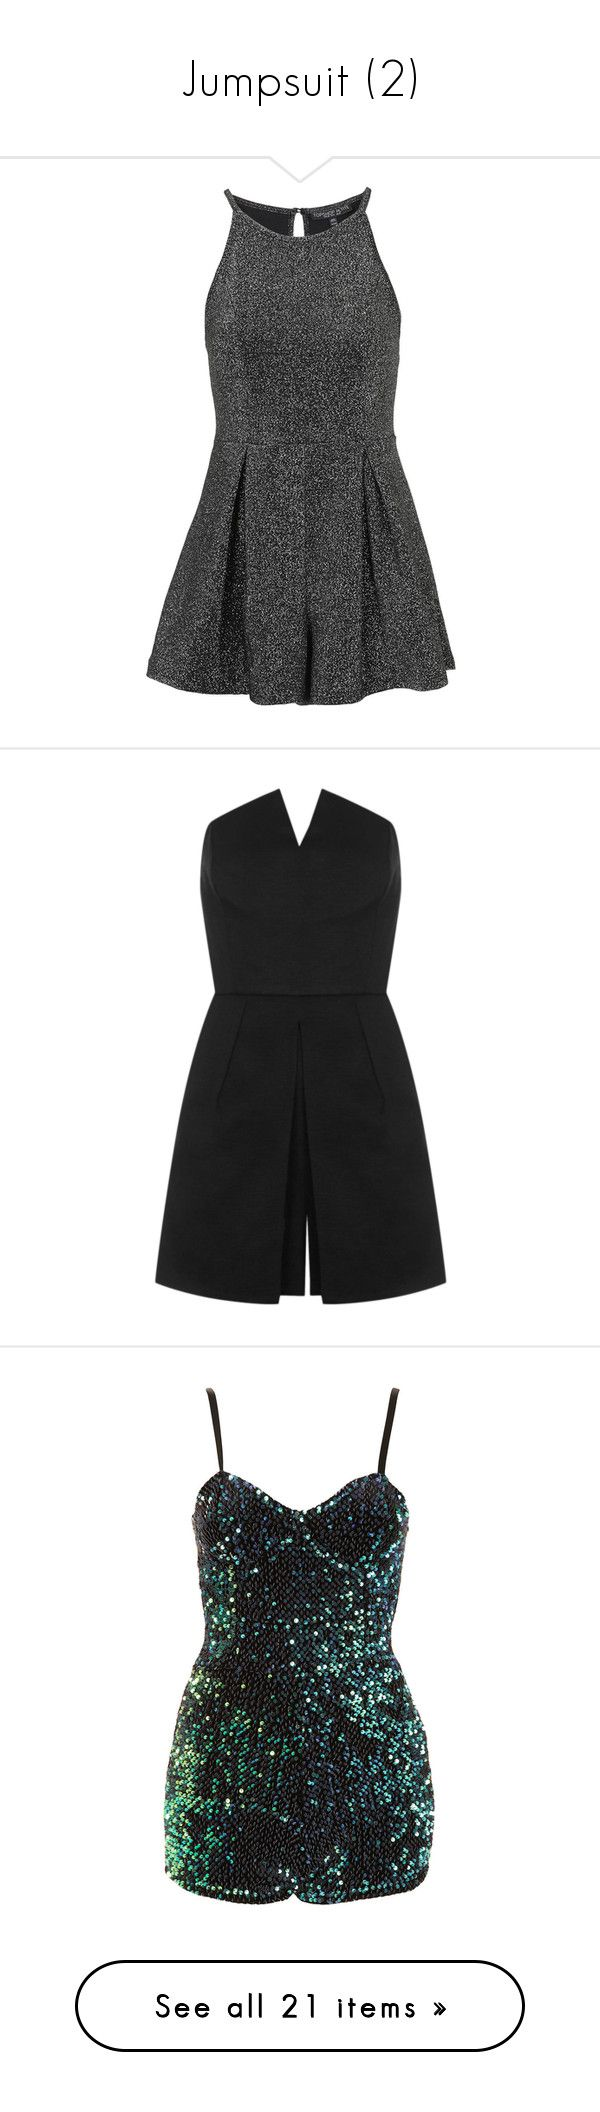 """Jumpsuit (2)"" by geniusmermaid ❤ liked on Polyvore featuring jumpsuits, rompers, dresses, vestidos, playsuits, petite, silver, playsuit romper, topshop romper and topshop rompers"